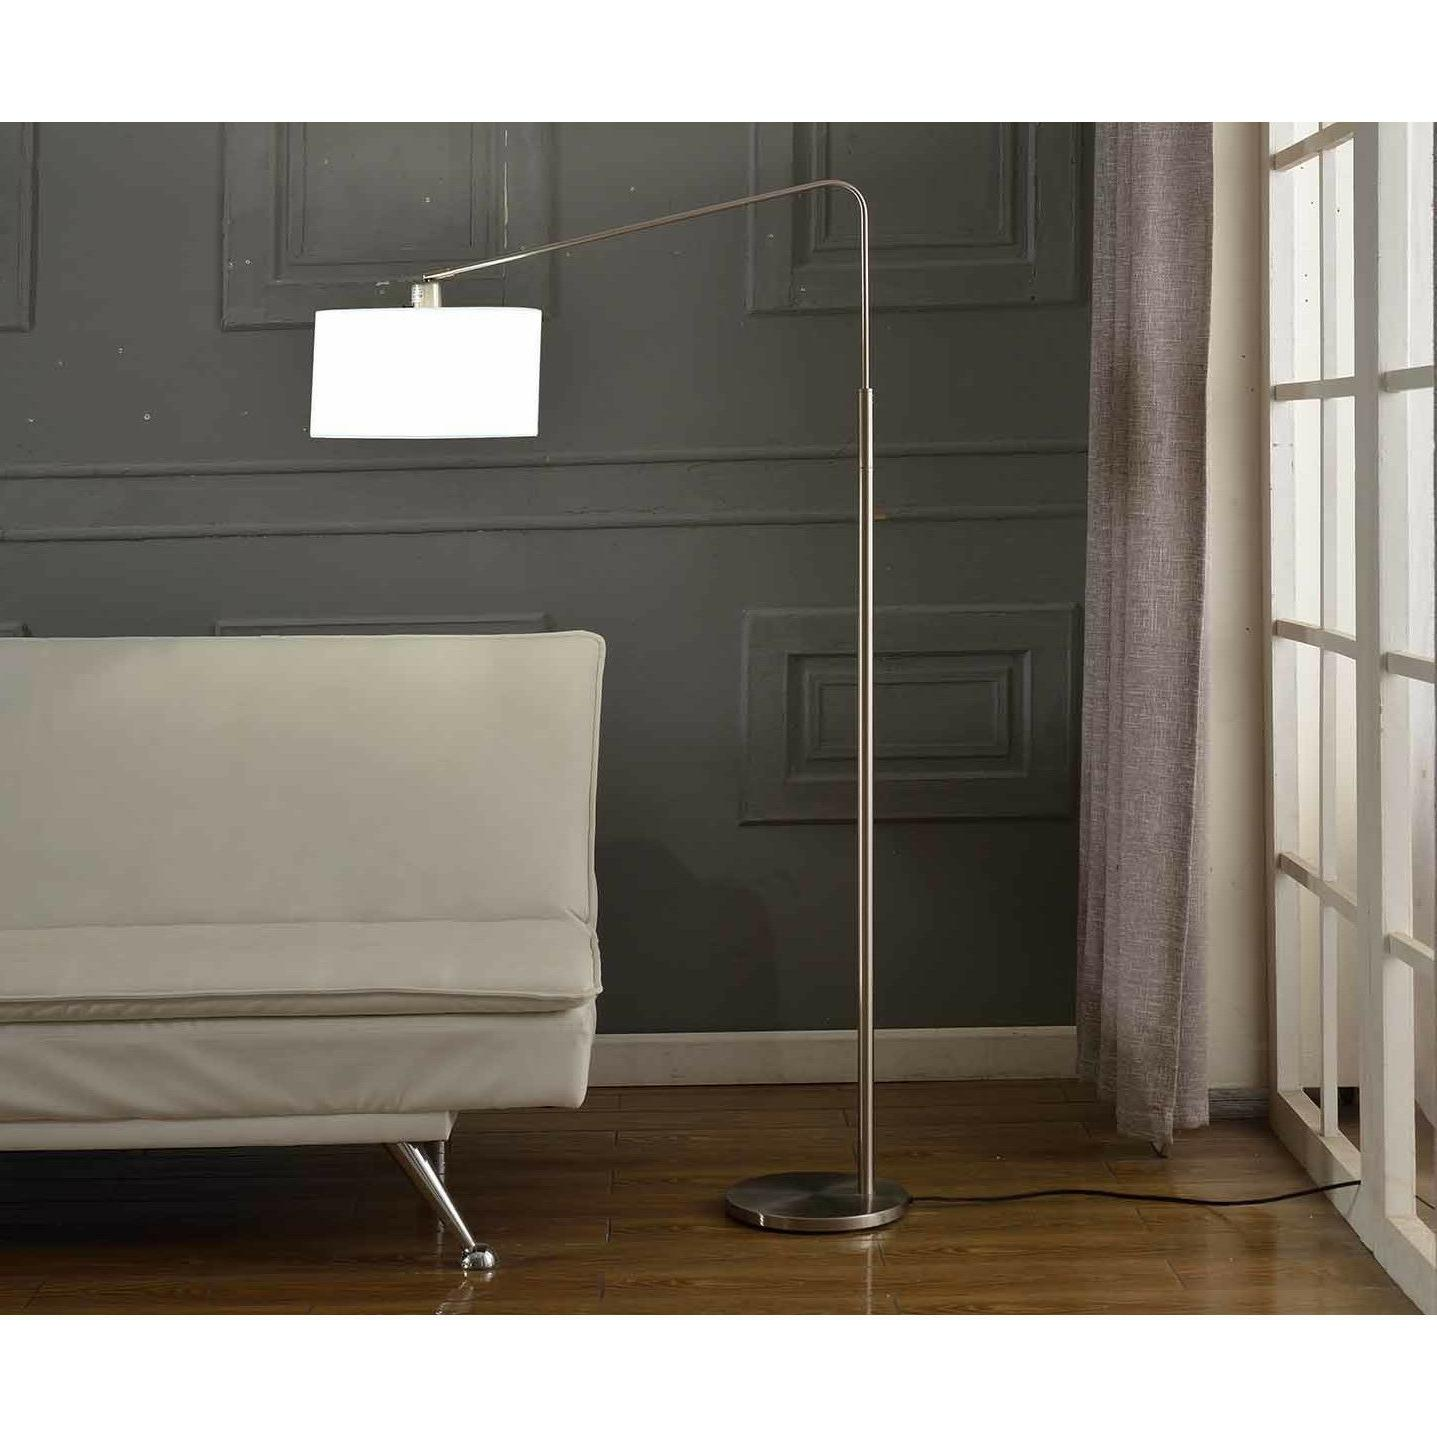 '80-degrees' 64-inch Medium Arch Brushed Steel Floor Lamp, W